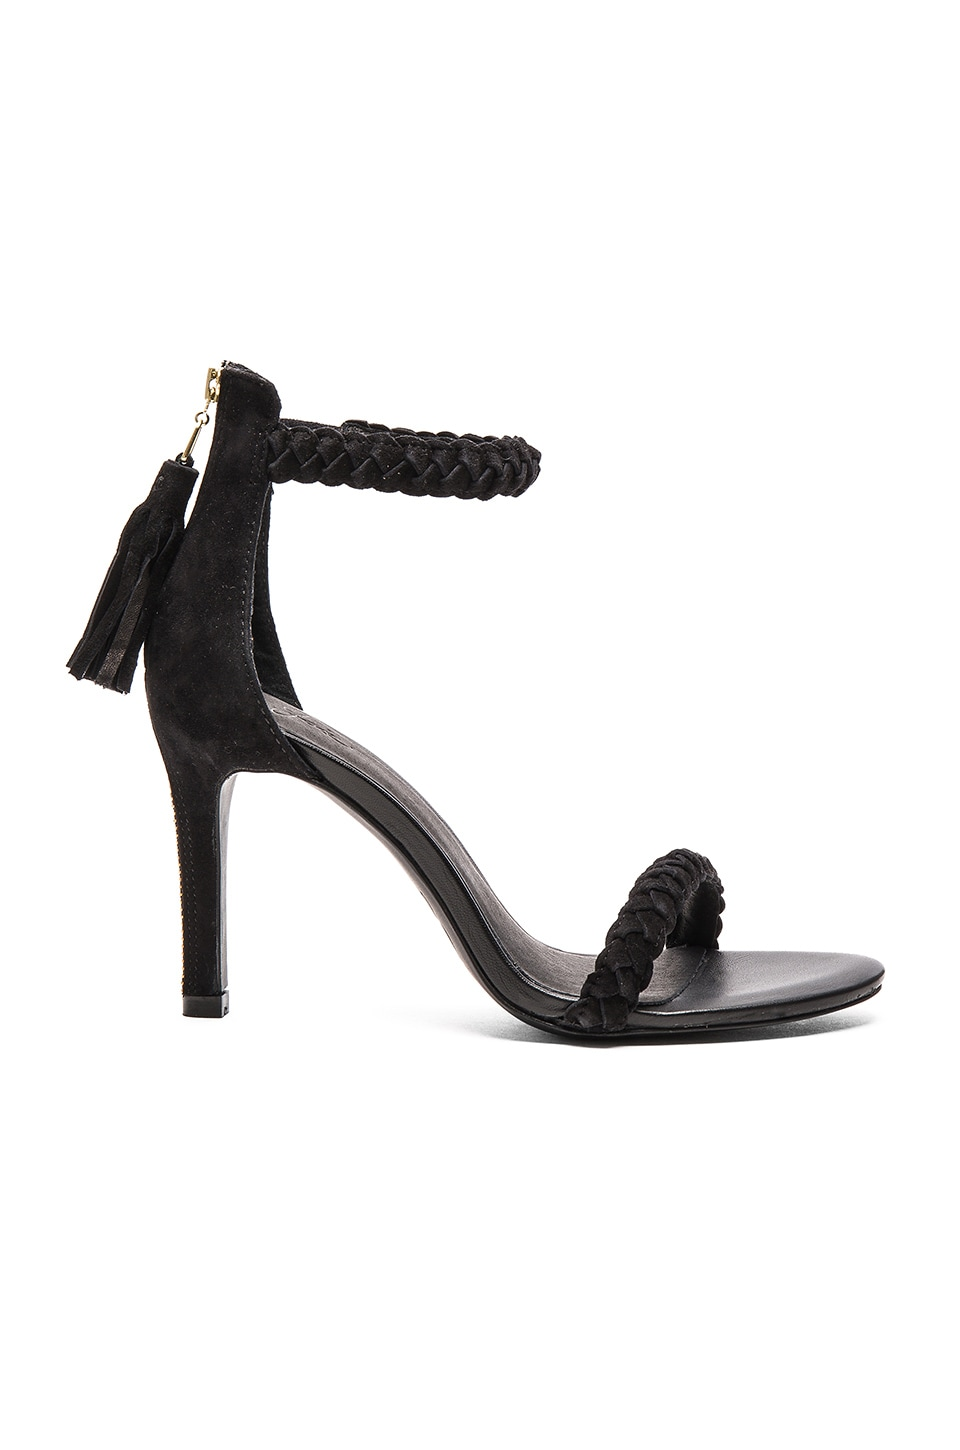 Joie Nia Heel in Black